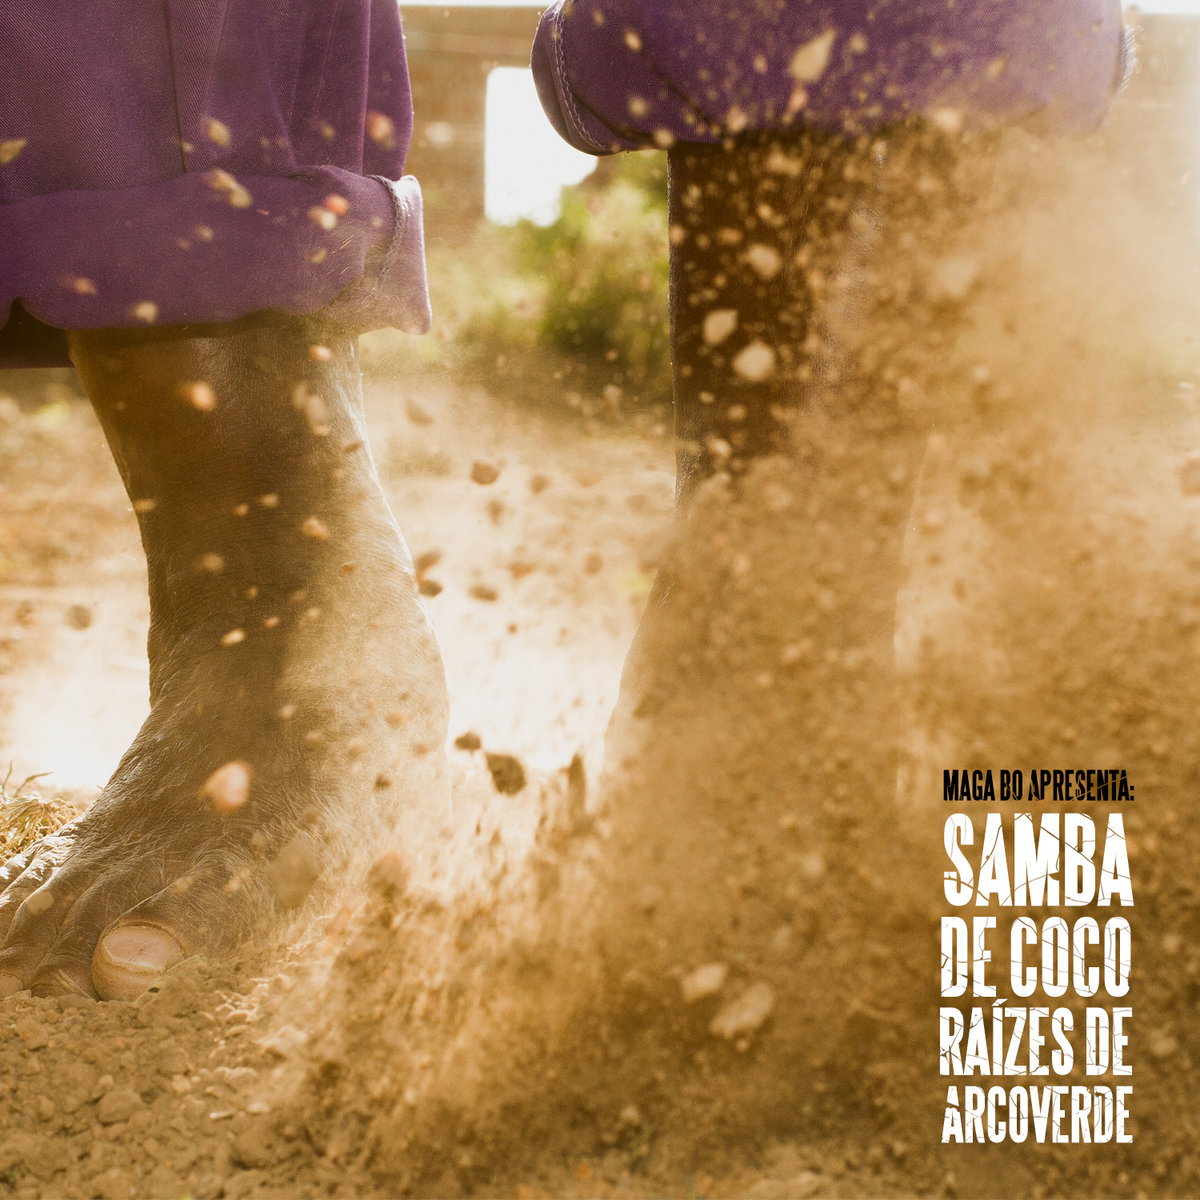 Raizes do samba | leci brandão – download and listen to the album.